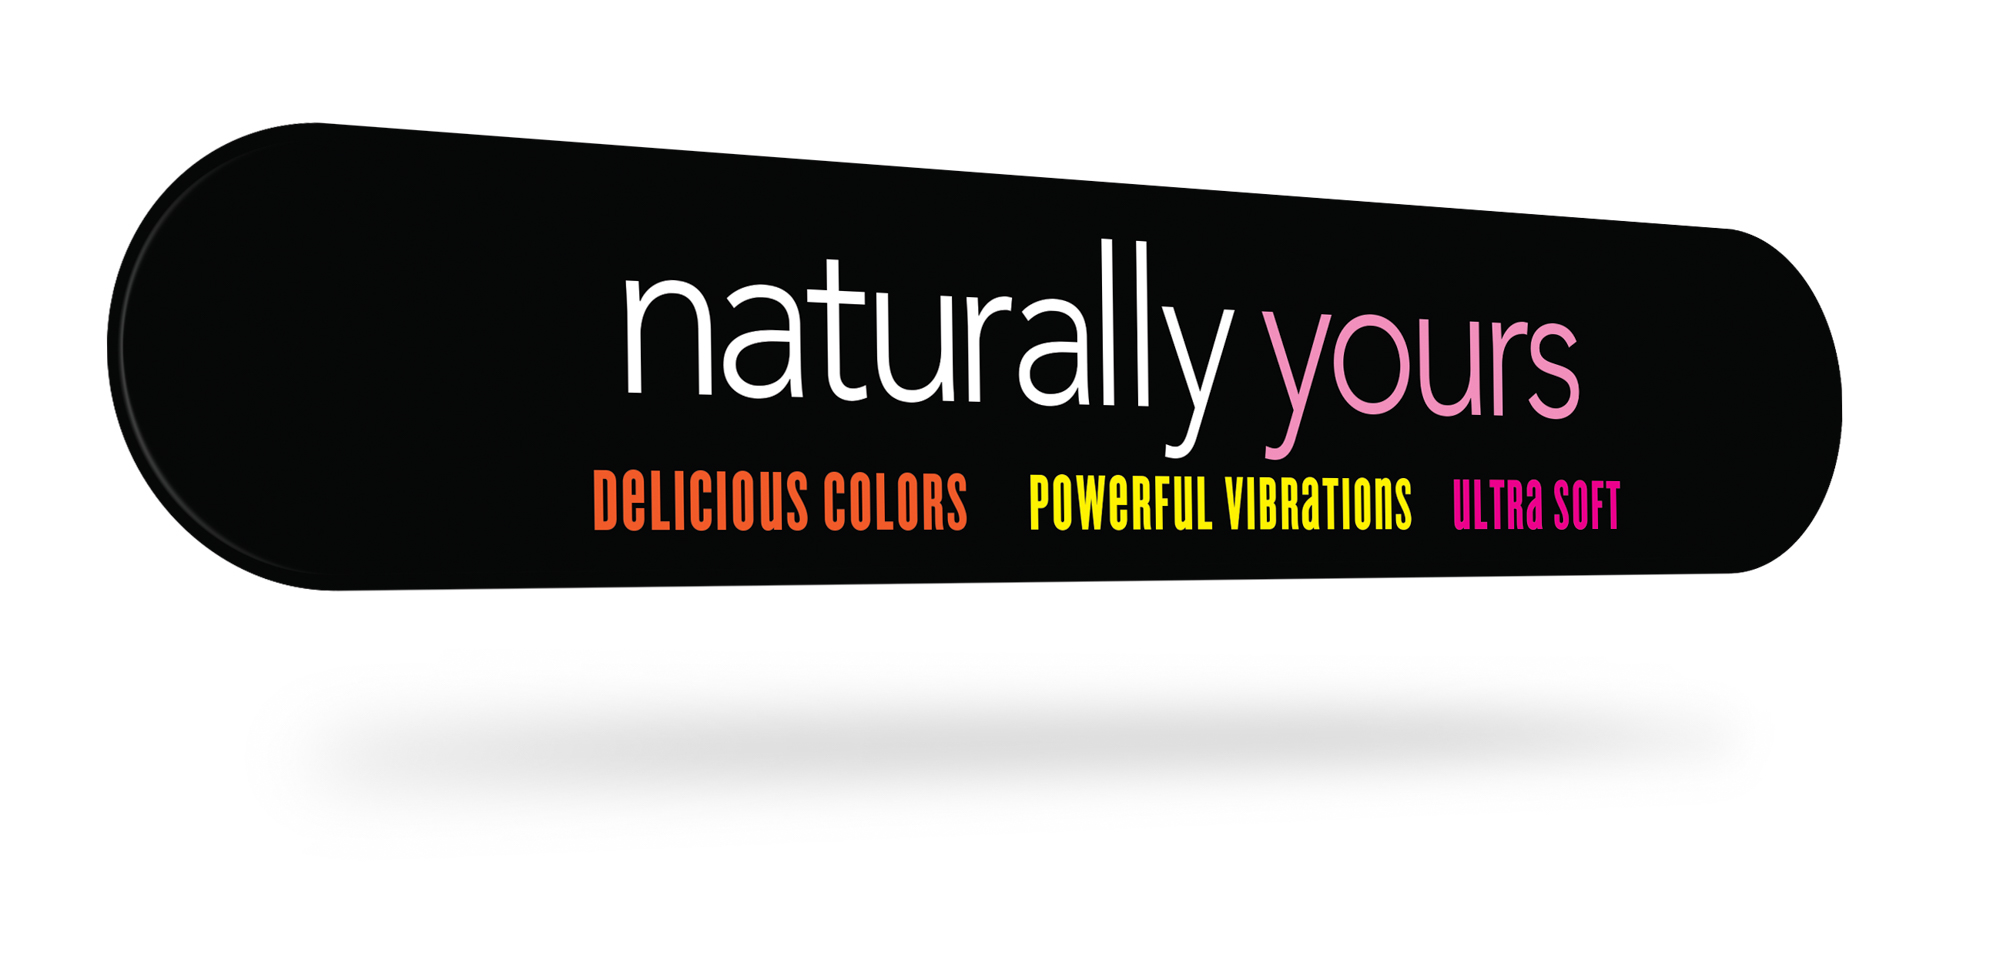 Naturally Yours - Slatwall Sign